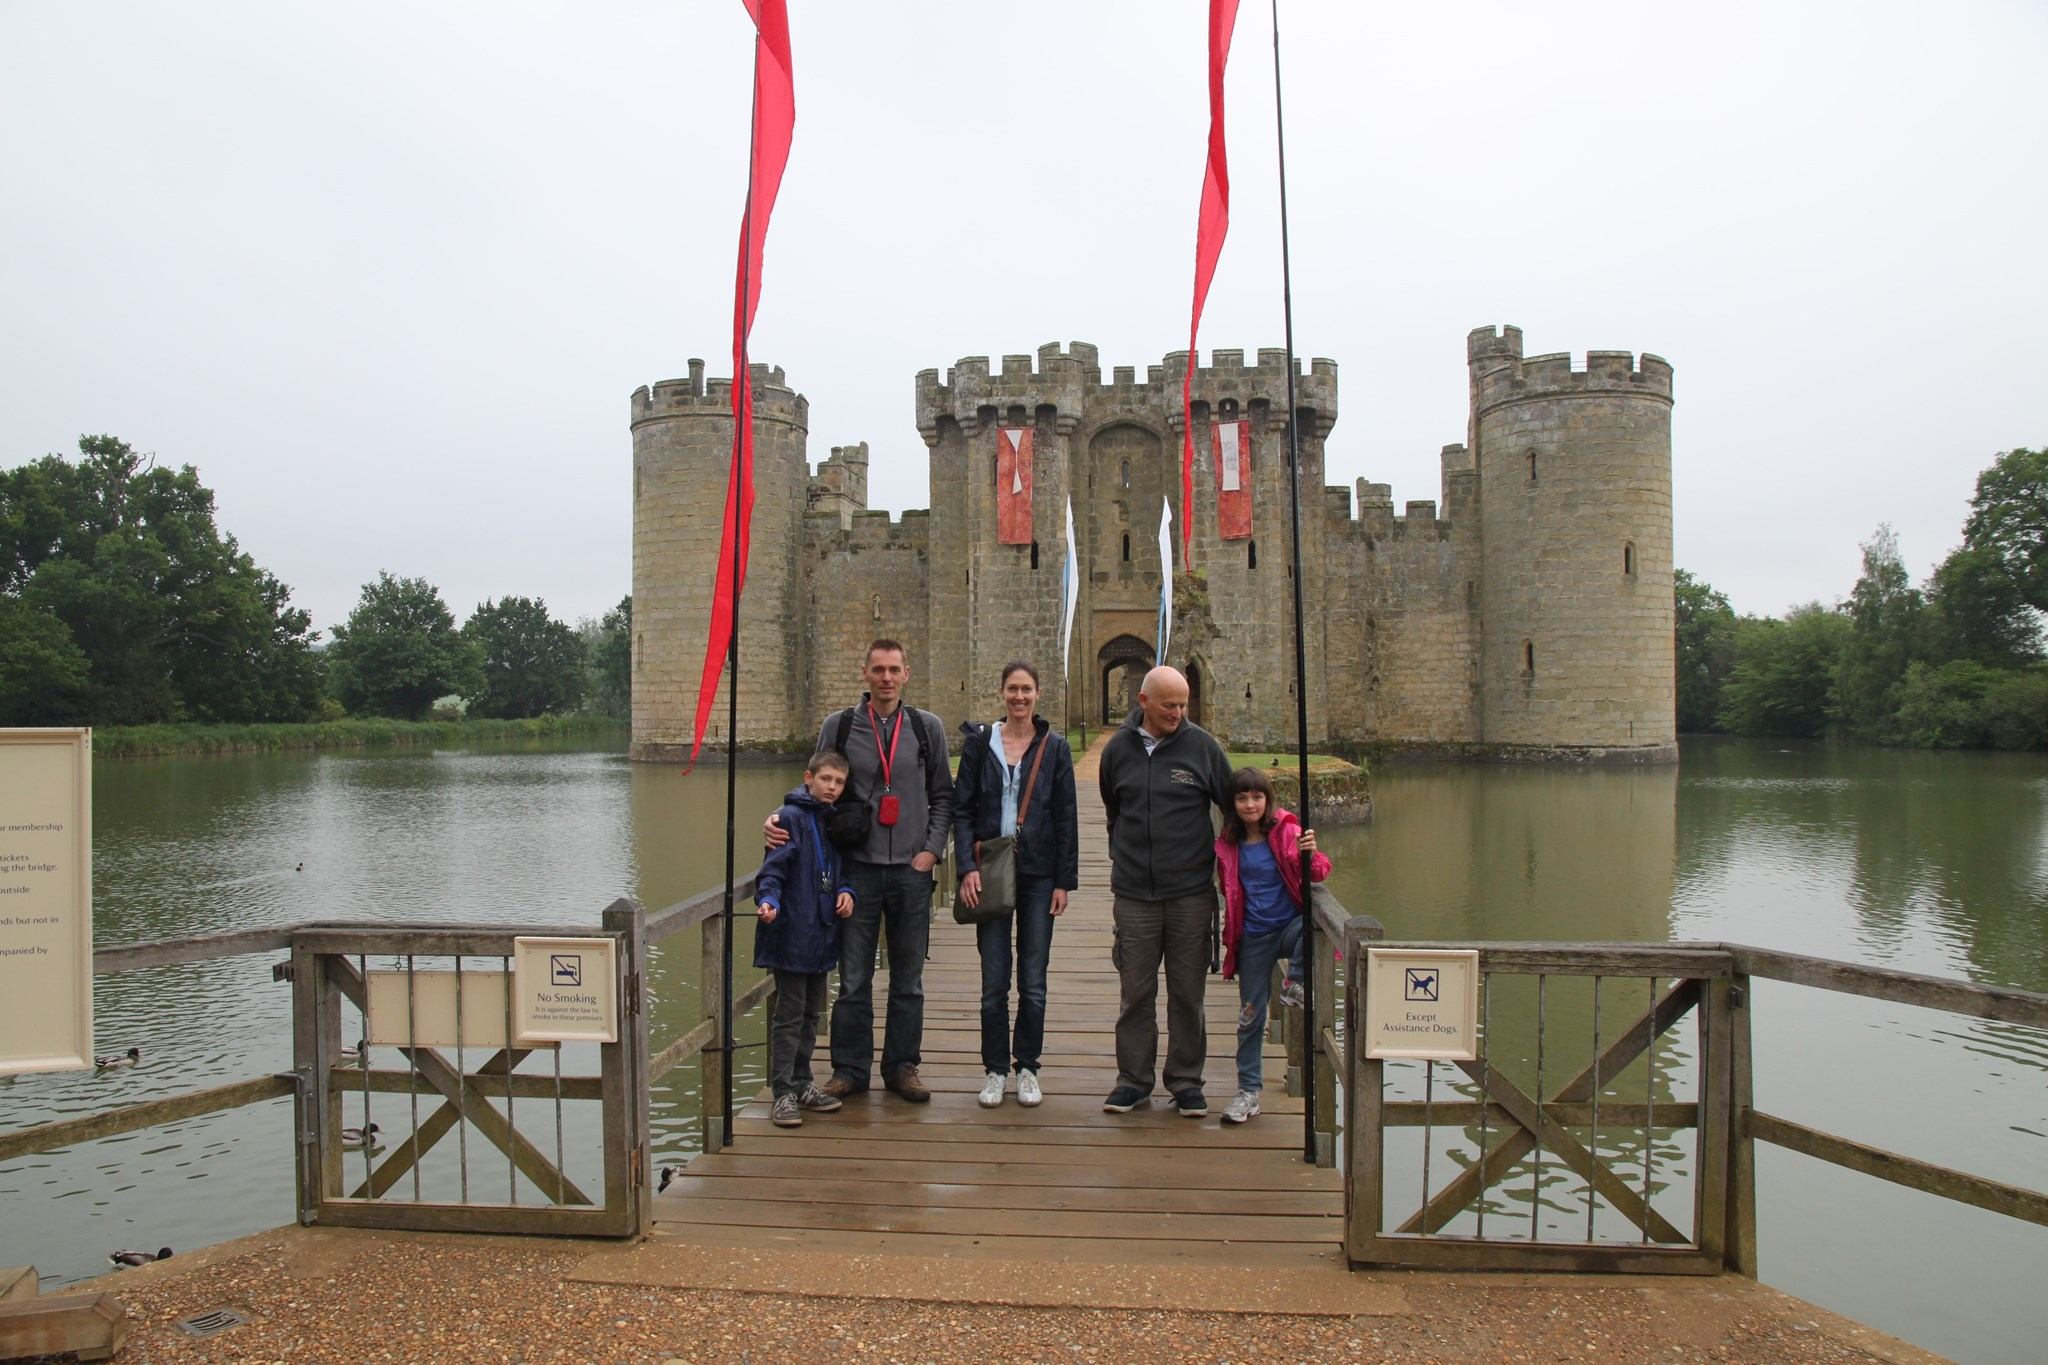 Visting Bodium Castle in May 2012